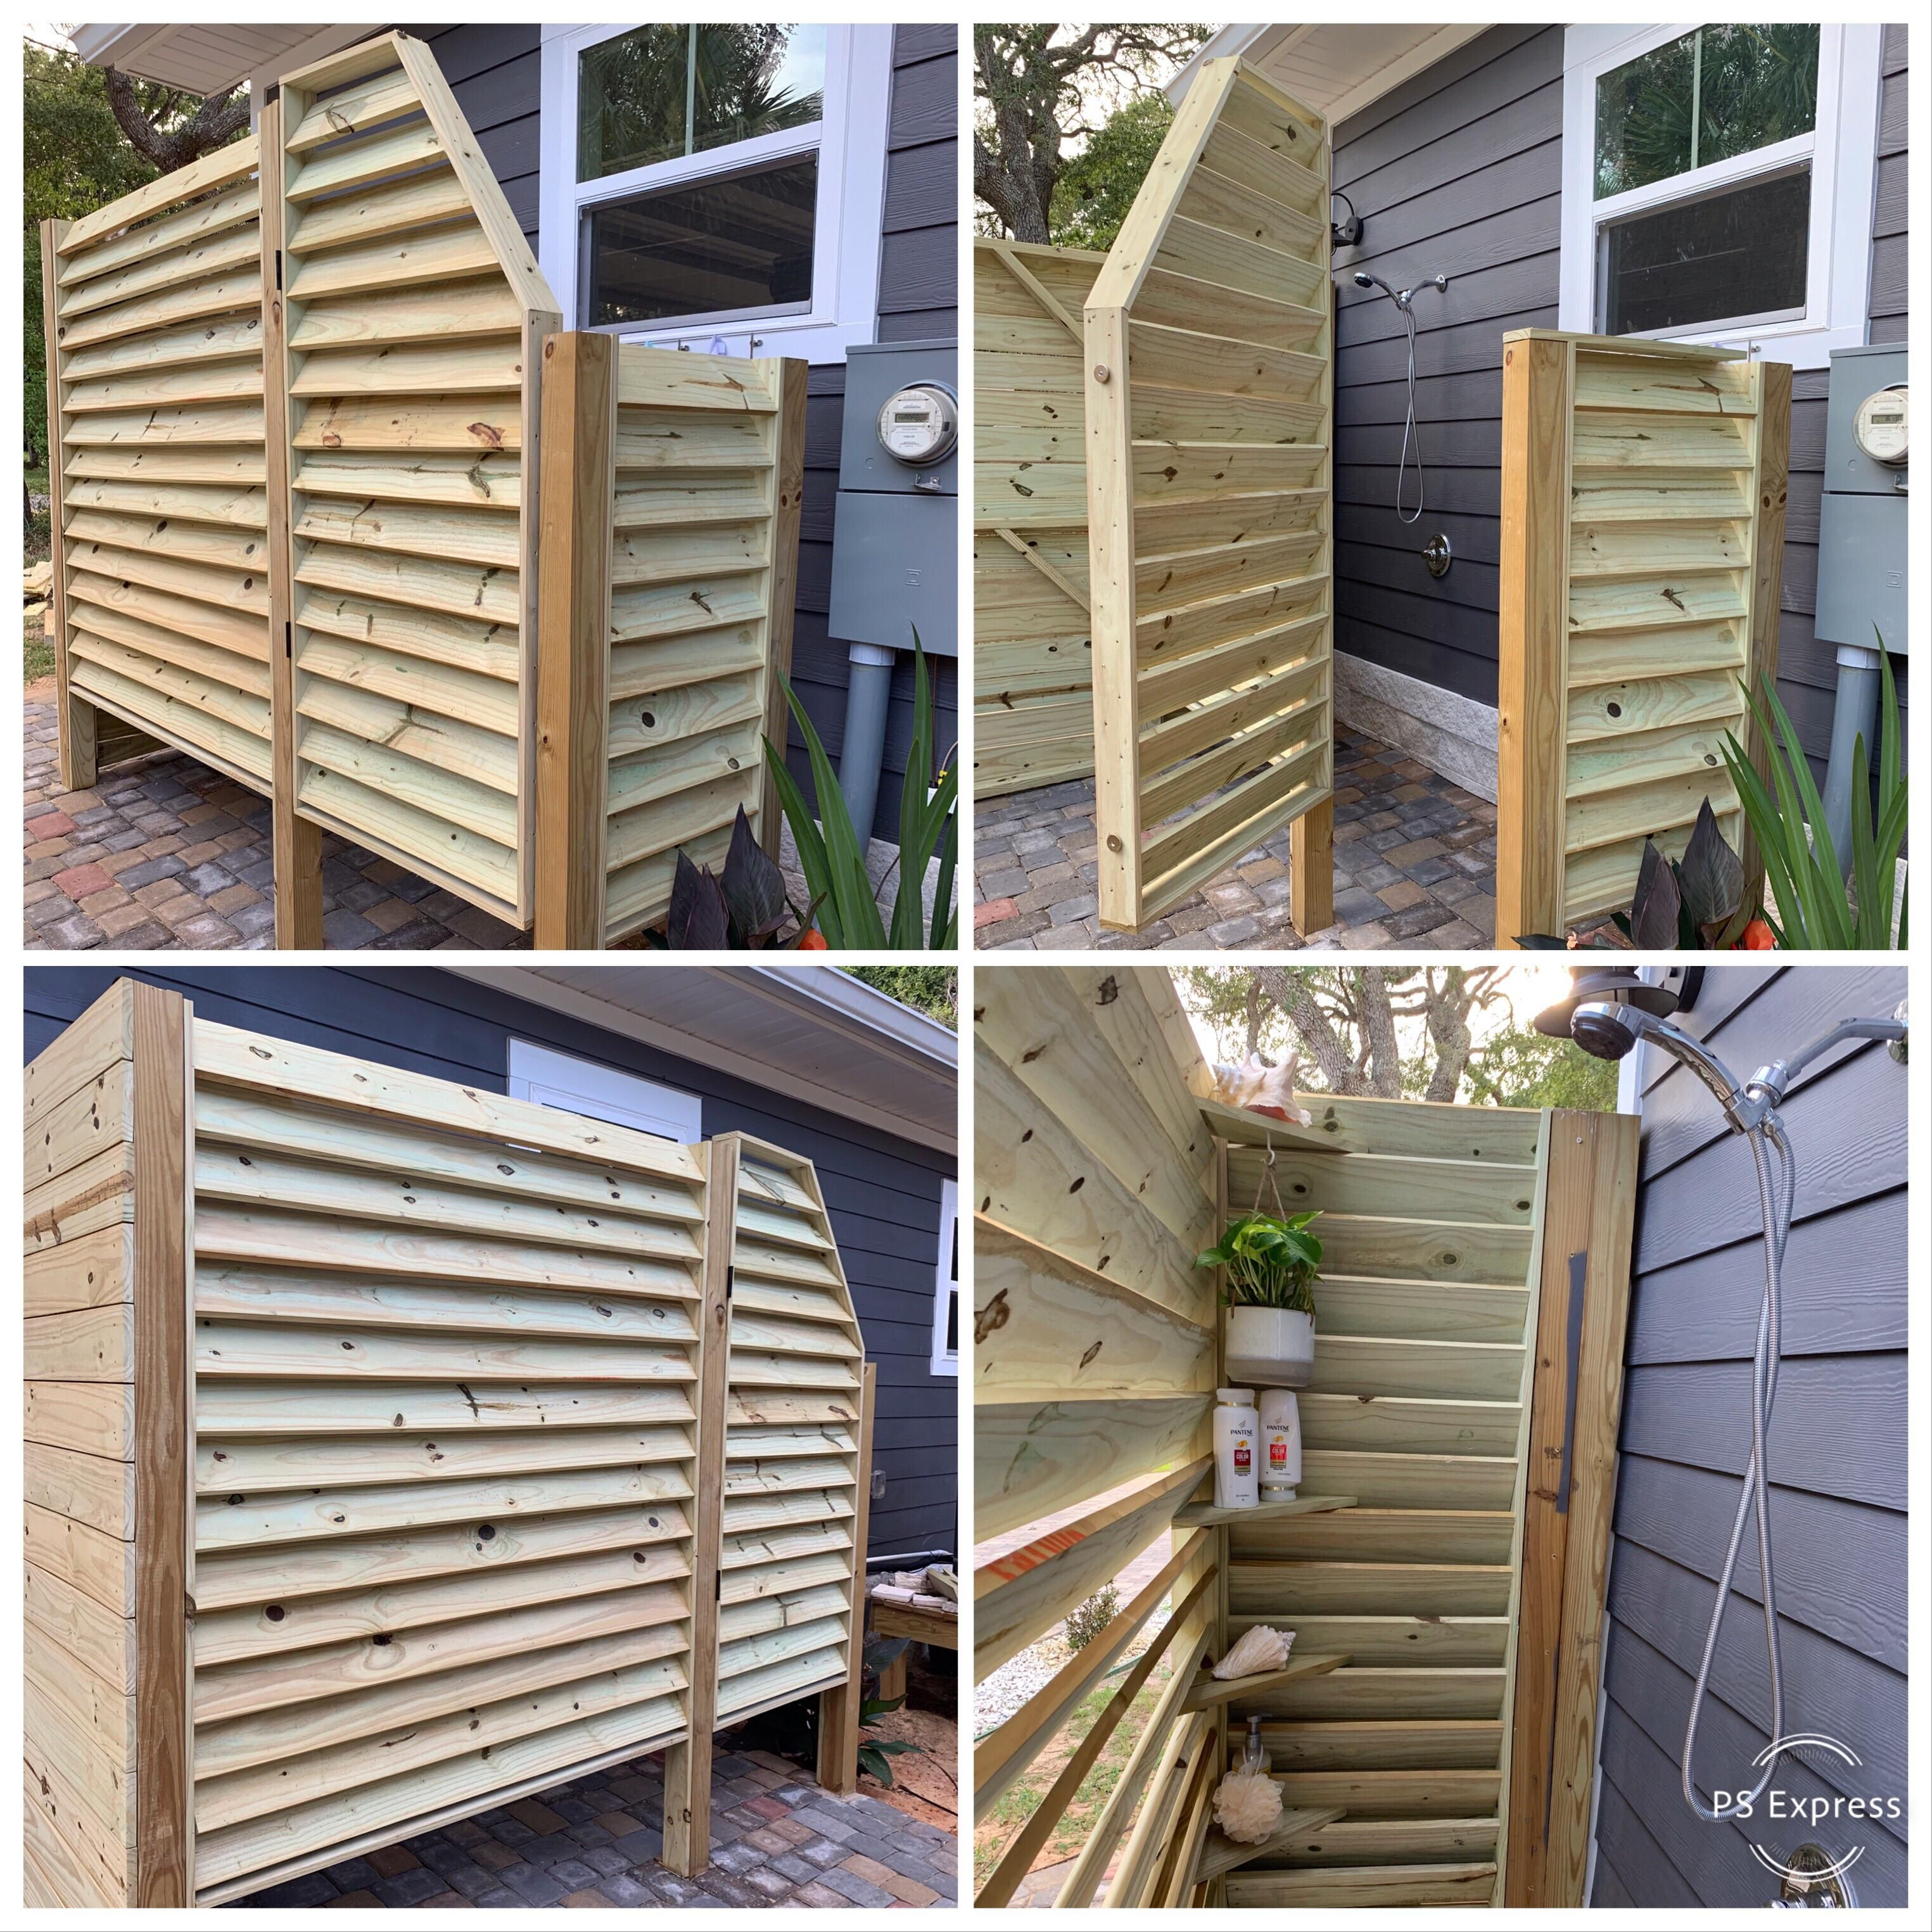 I Helped A Friend Last Weekend Build This Outdoor Shower Enclosure Using Pressure Treated 1x4s And 1x6 Outdoor Shower Enclosure Outdoor Shower Shower Enclosure